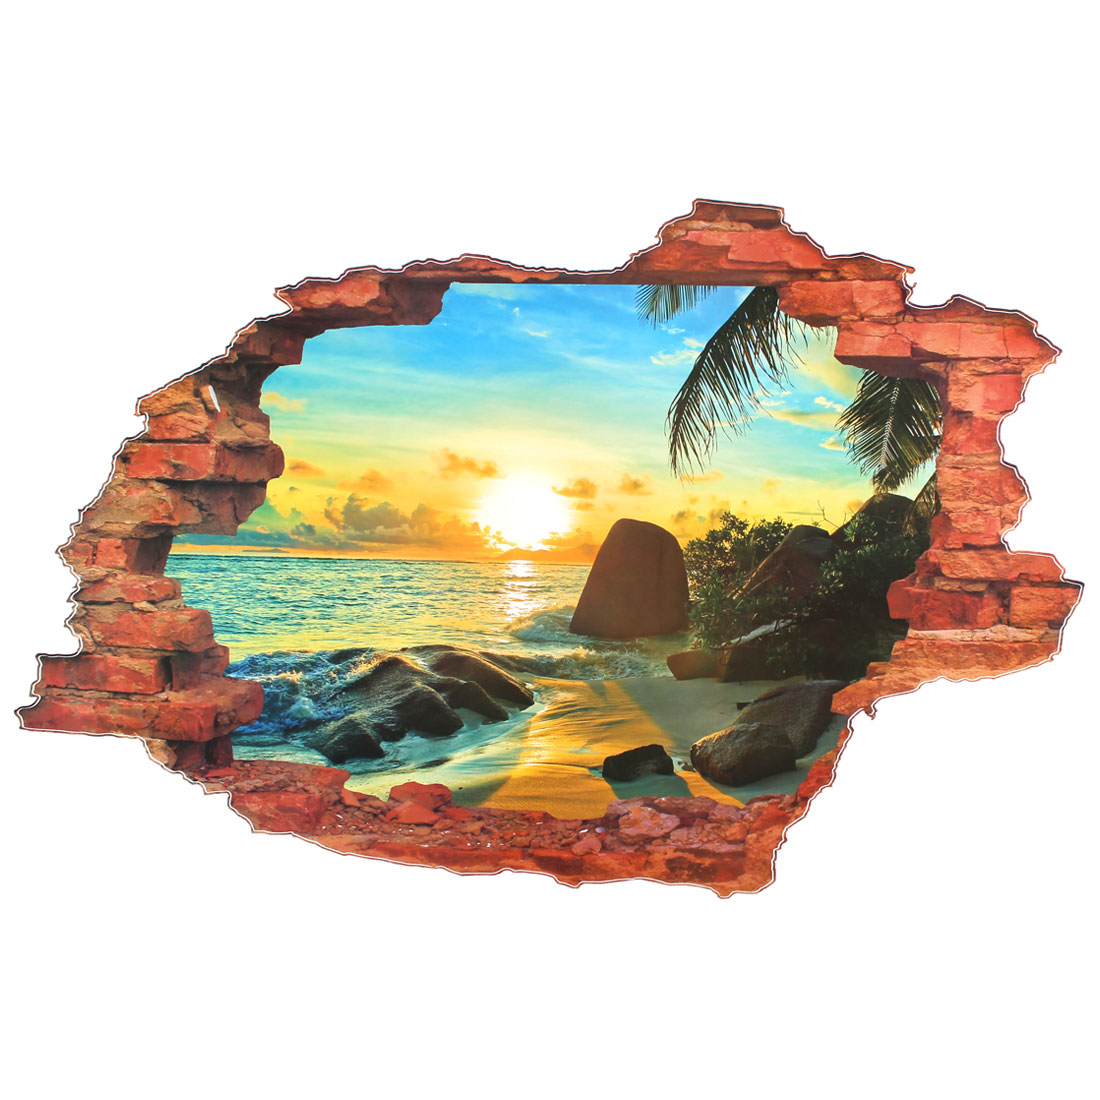 3D Ocean Beach Scenery Pattern PVC DIY Art Decal Wall Sticker Mural Decor